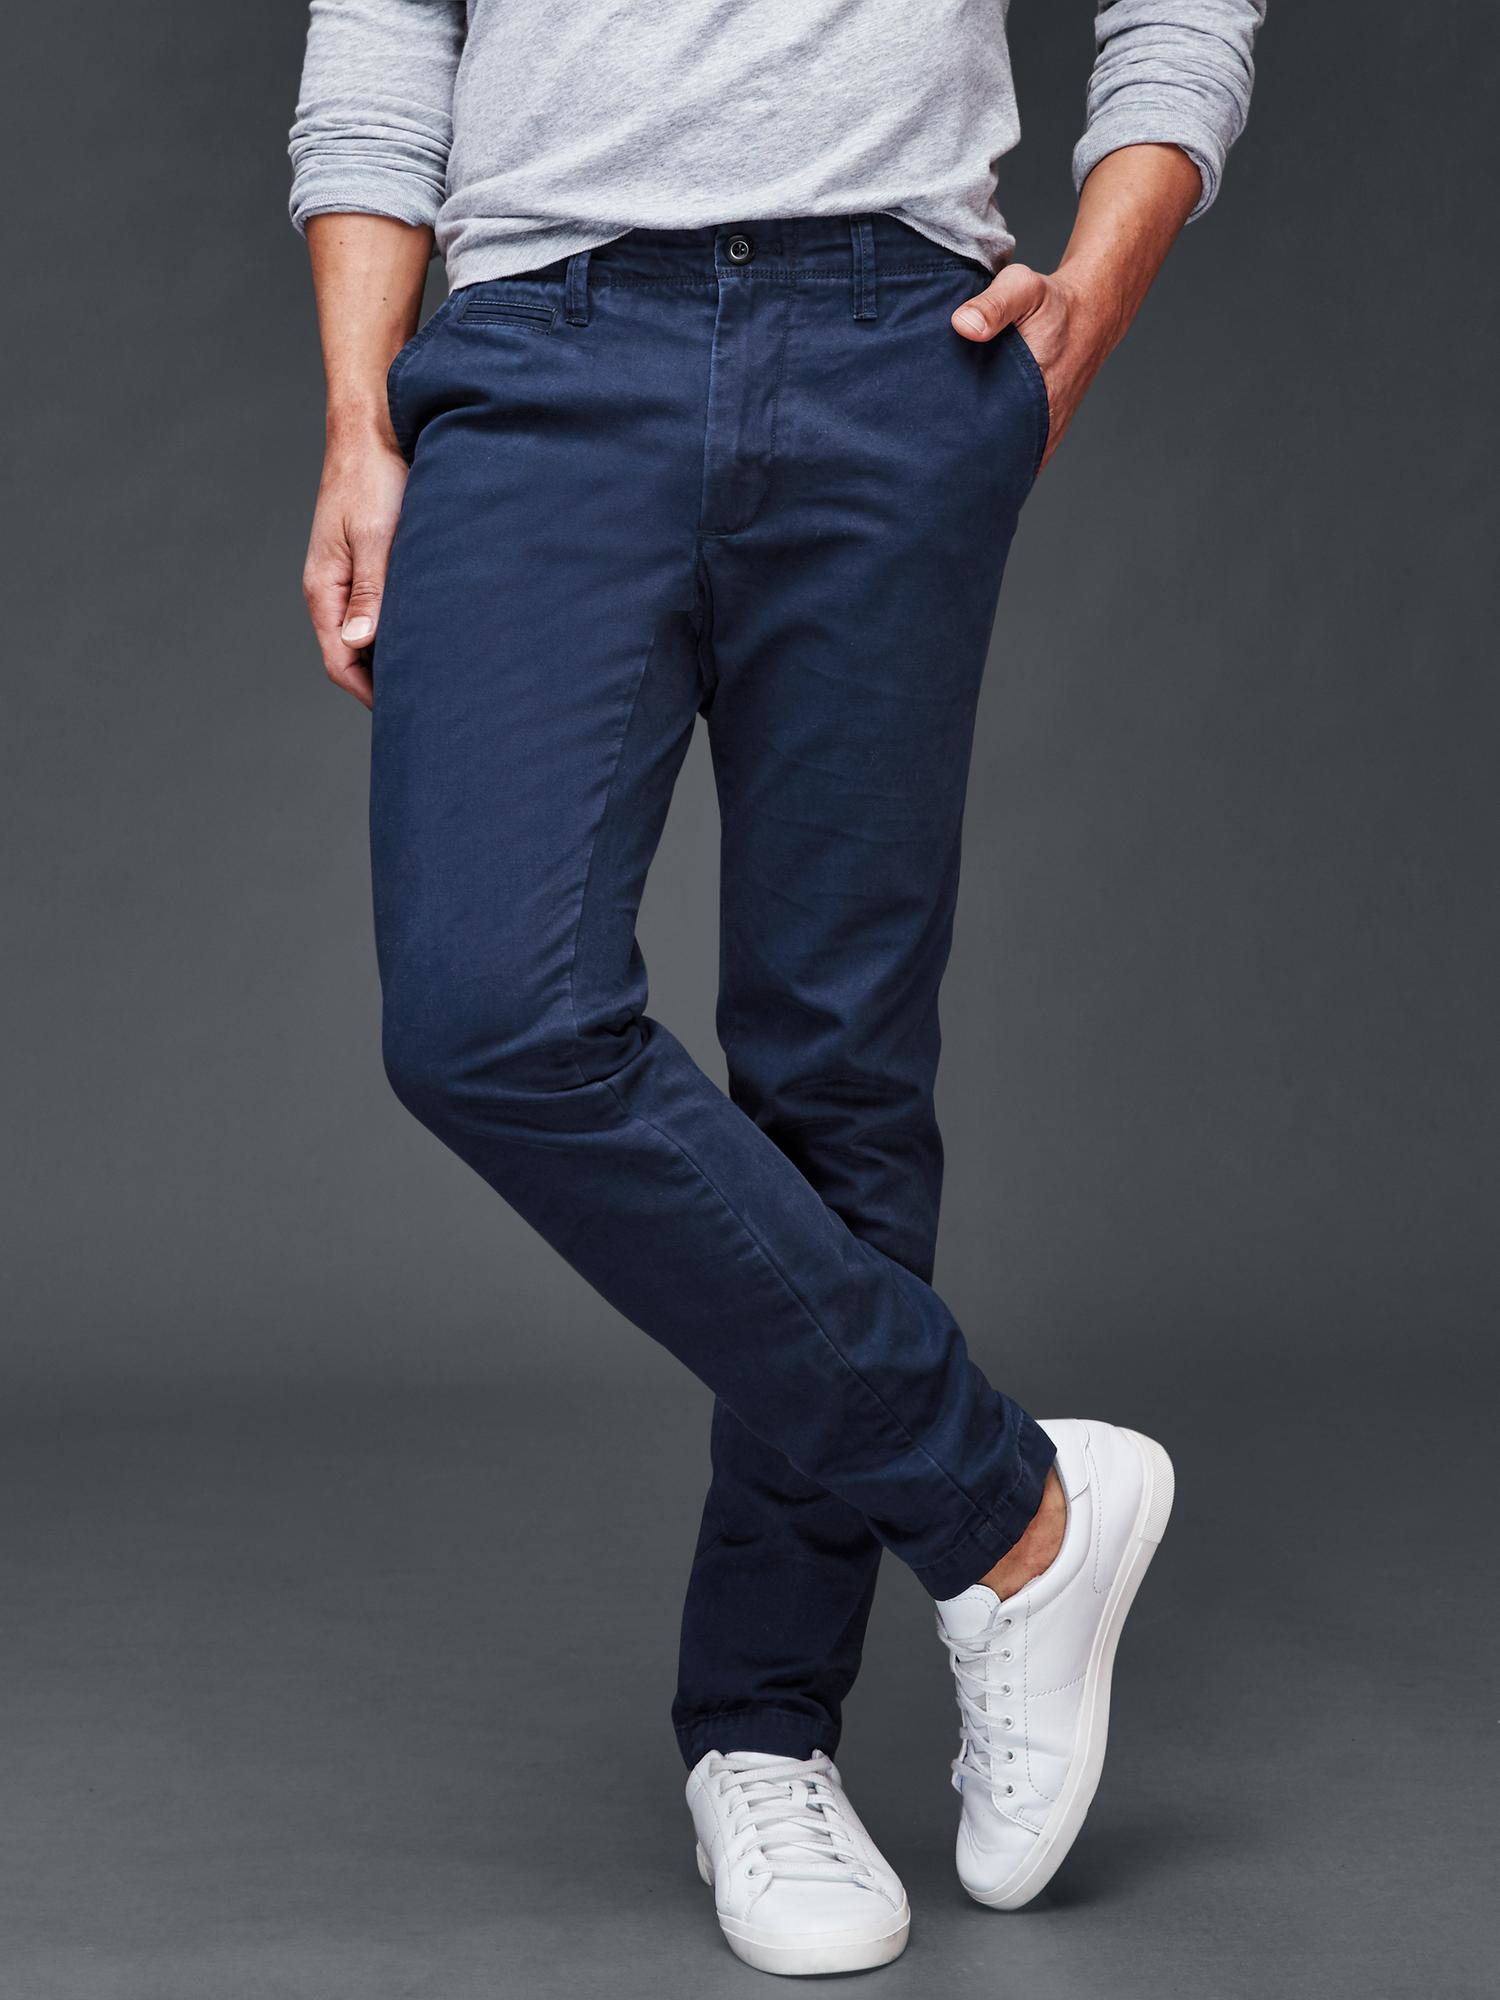 Look awesome in American Eagle Jeans. With jeans in all washes, colors and fits, both men and women are guaranteed to find the perfect pair of jeans at distrib-ah3euse9.tk